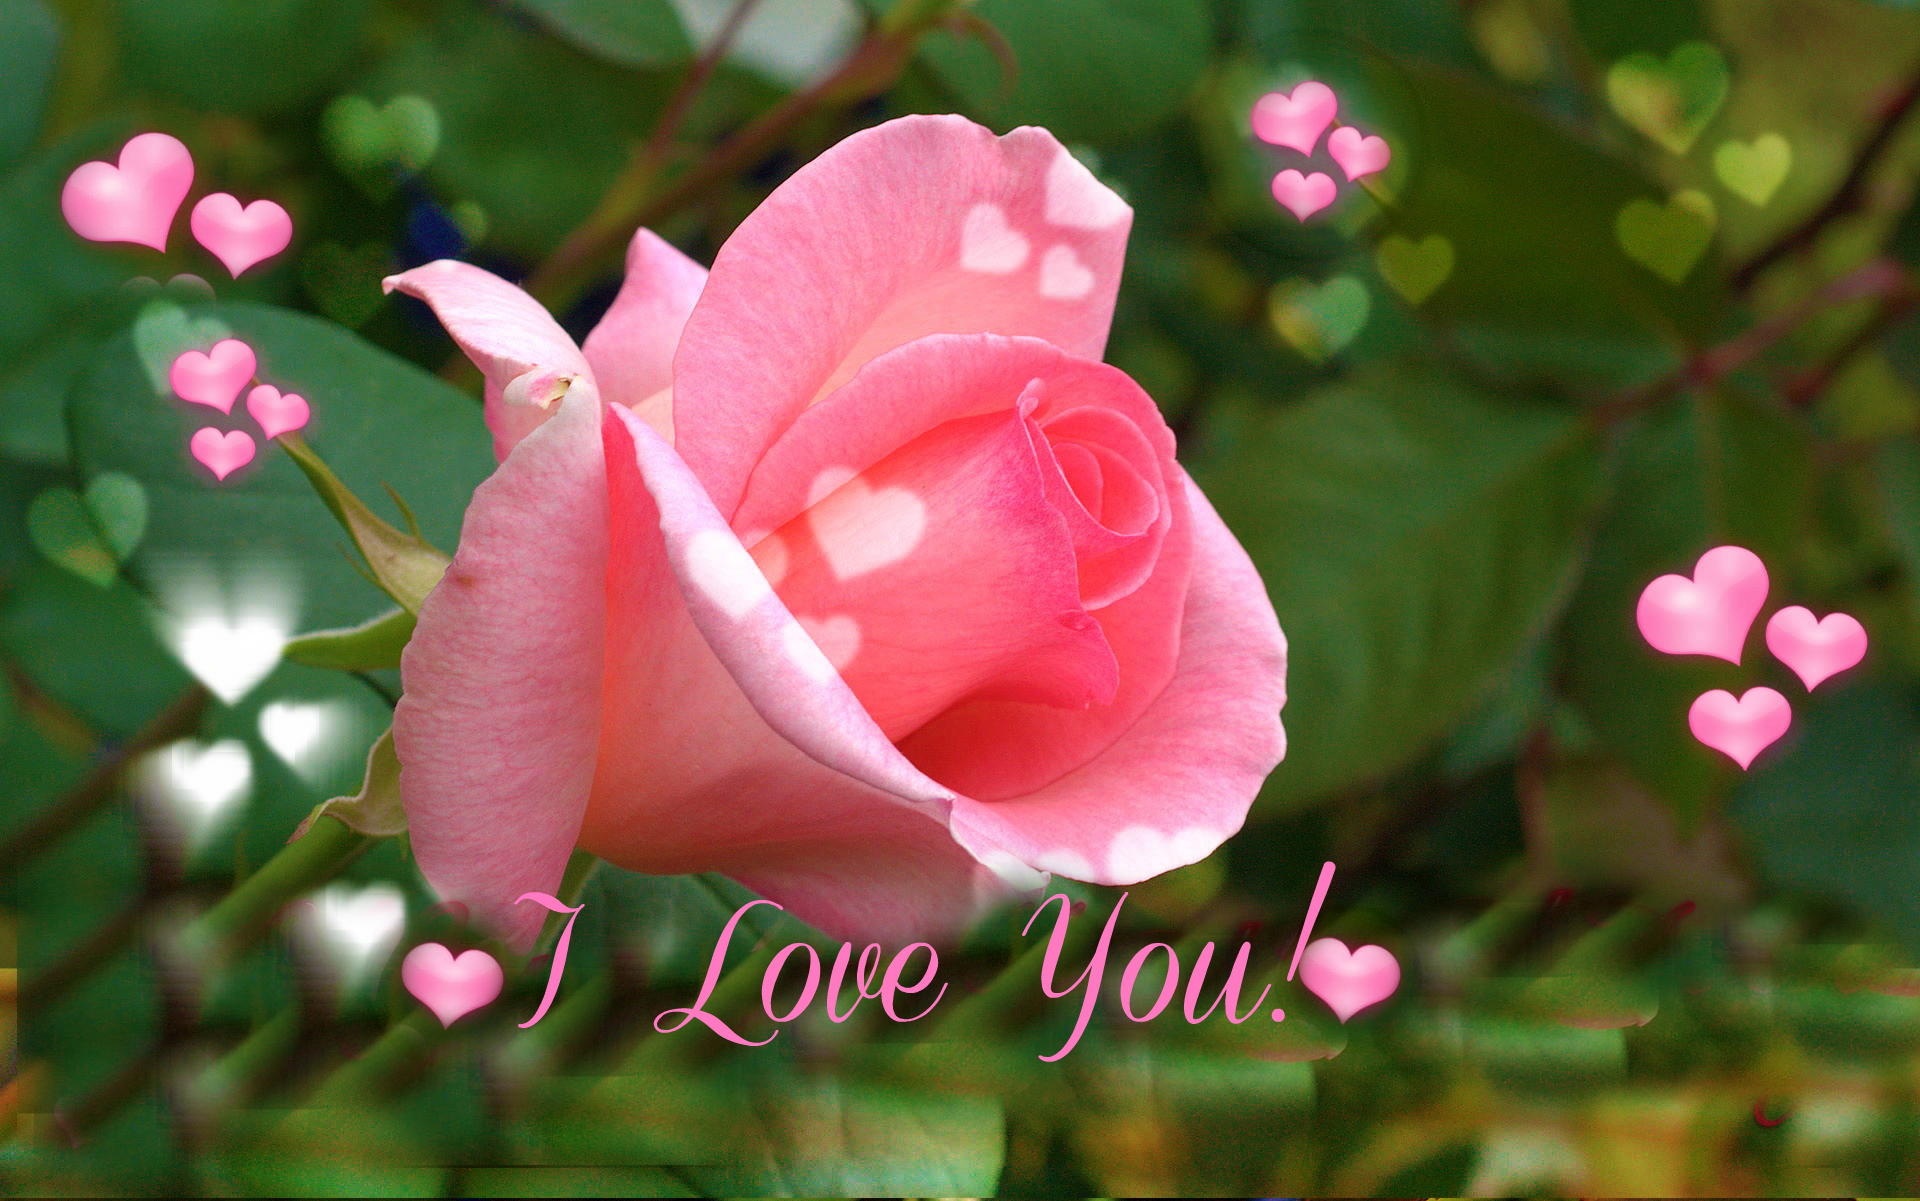 I Love You Pink Rose For Valentine S Day Wallpapers - Rose L Love U , HD Wallpaper & Backgrounds